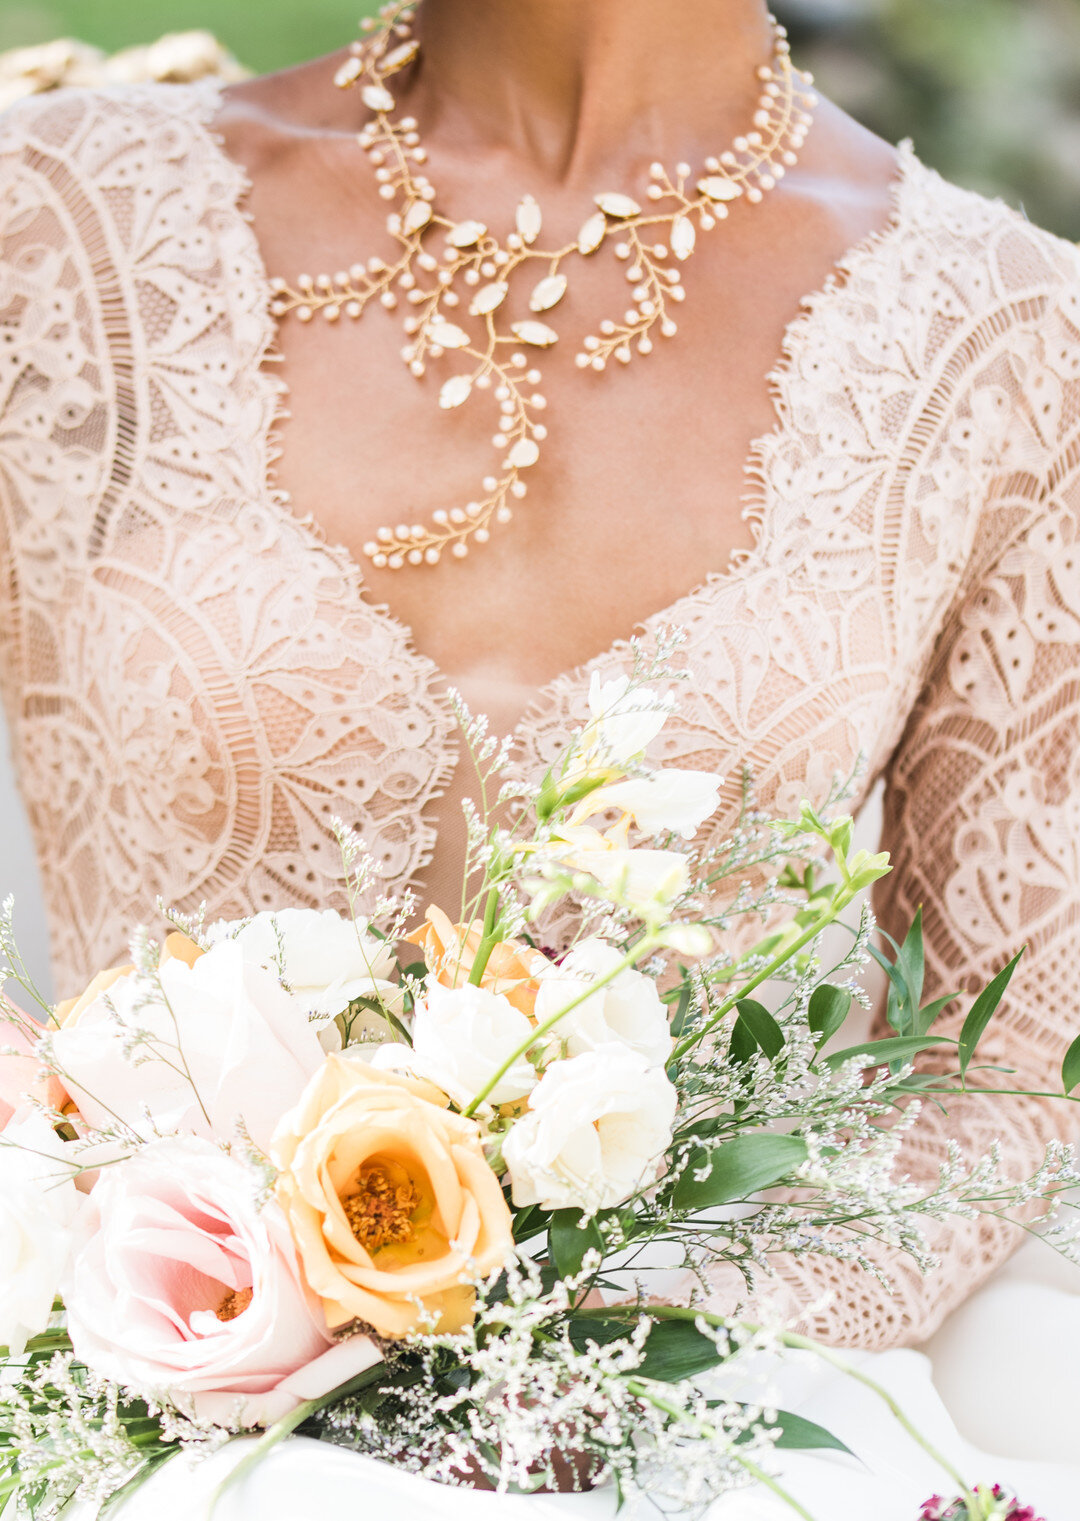 Vintage Southern Charm at Historic Bonnet House  & Gardens_Suzanne Lytle Photography_FortLauderdaleStylized144_big.JPG